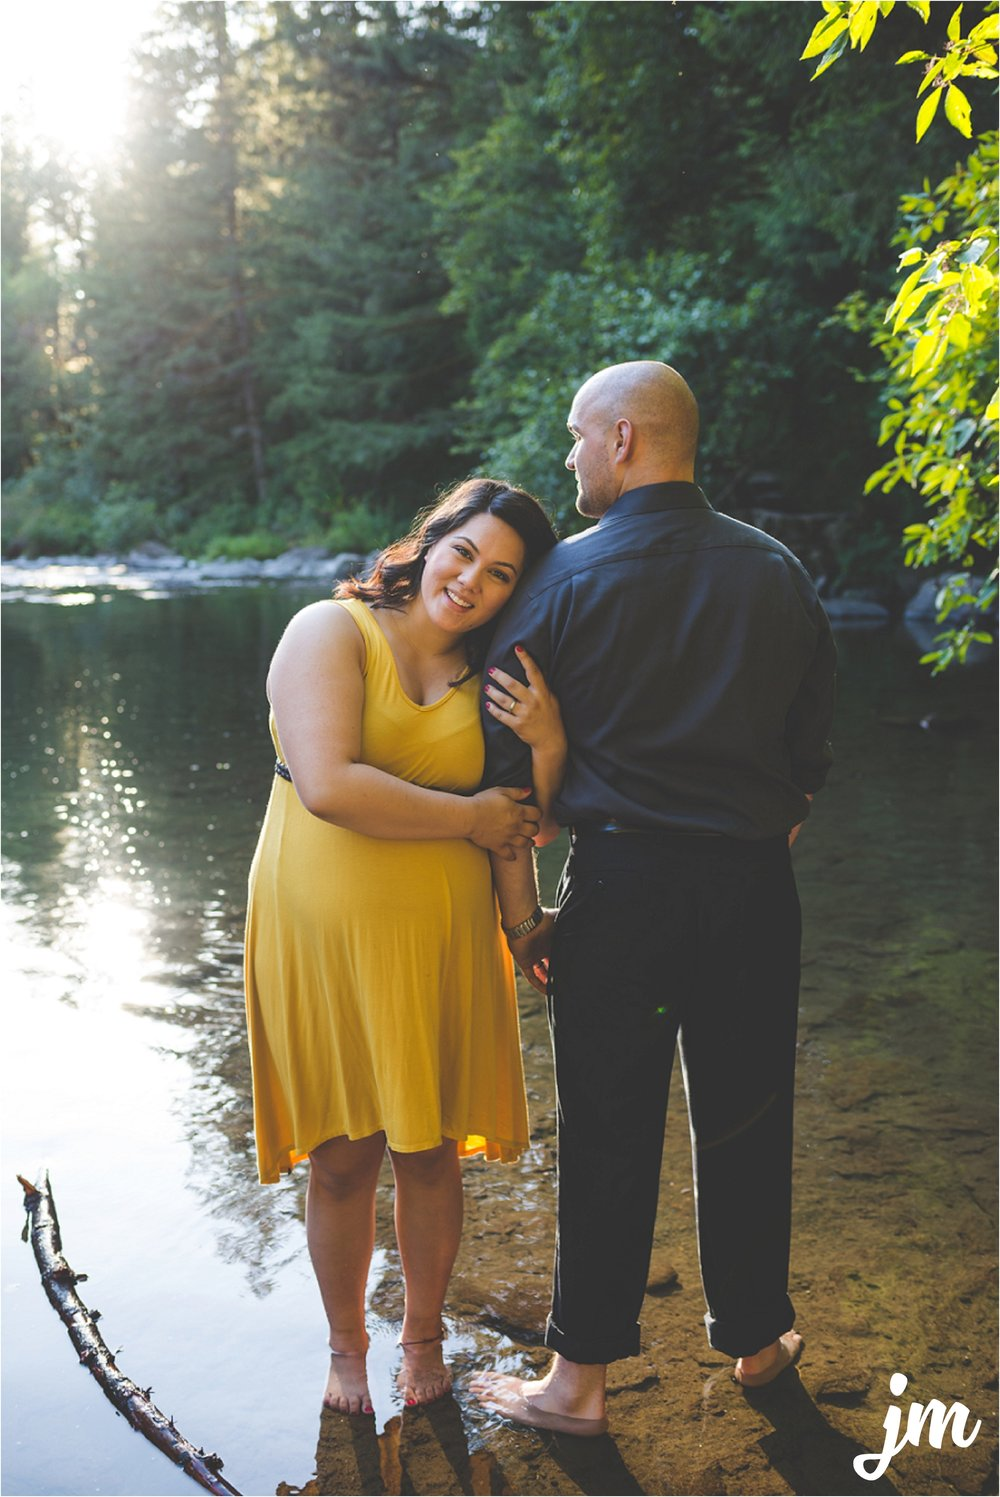 jannicka-mayte-moulton-falls-park-maternity-session-pacific-northwest-lifestyle-photographer_0019.jpg